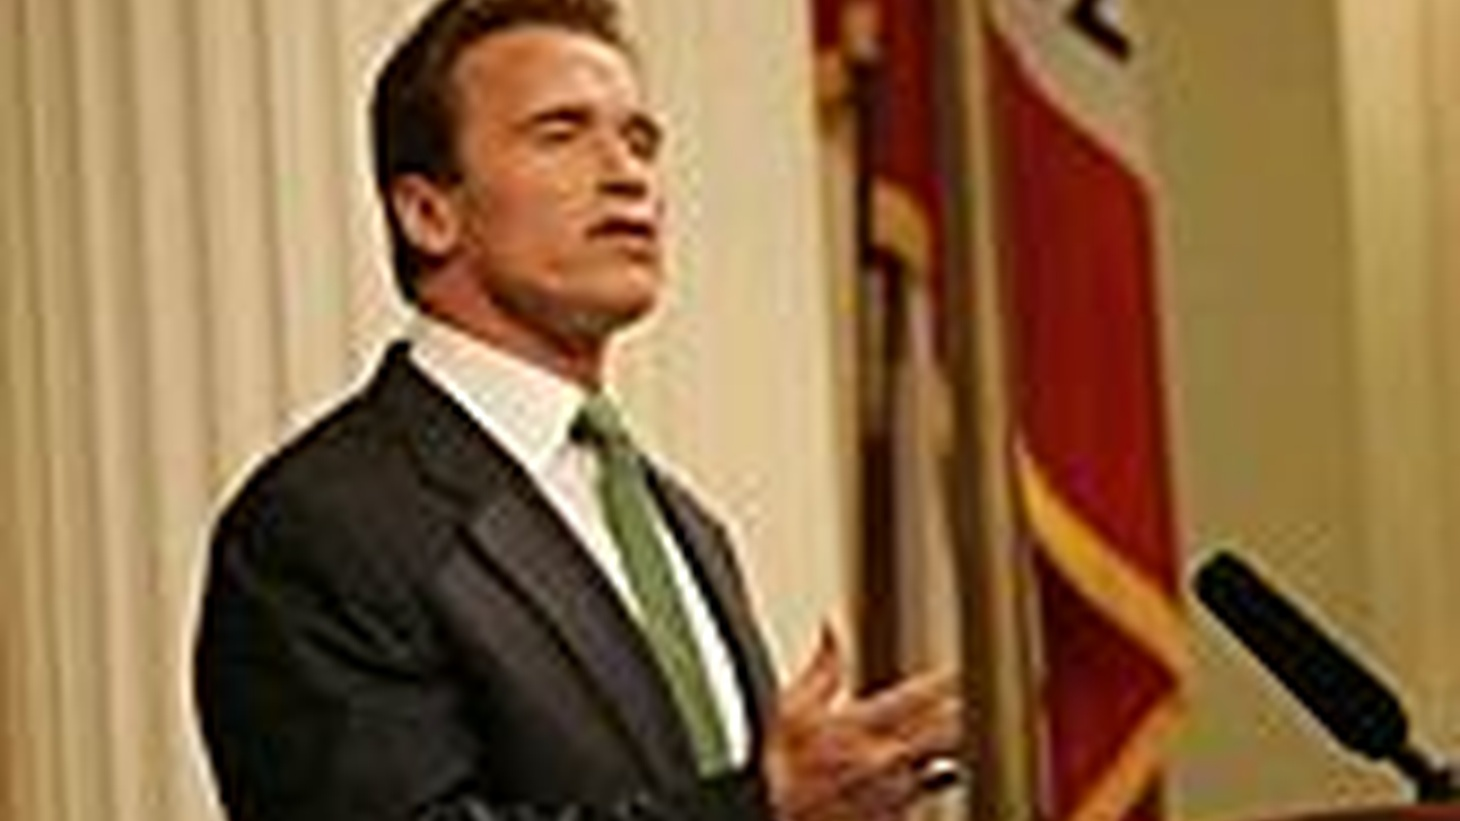 Governor Arnold Schwarzenegger gives his State of the State address. Warren Olney hosts special coverage, featuring excerpts and analysis, tomorrow on KCRW's Which Way, L.A.?